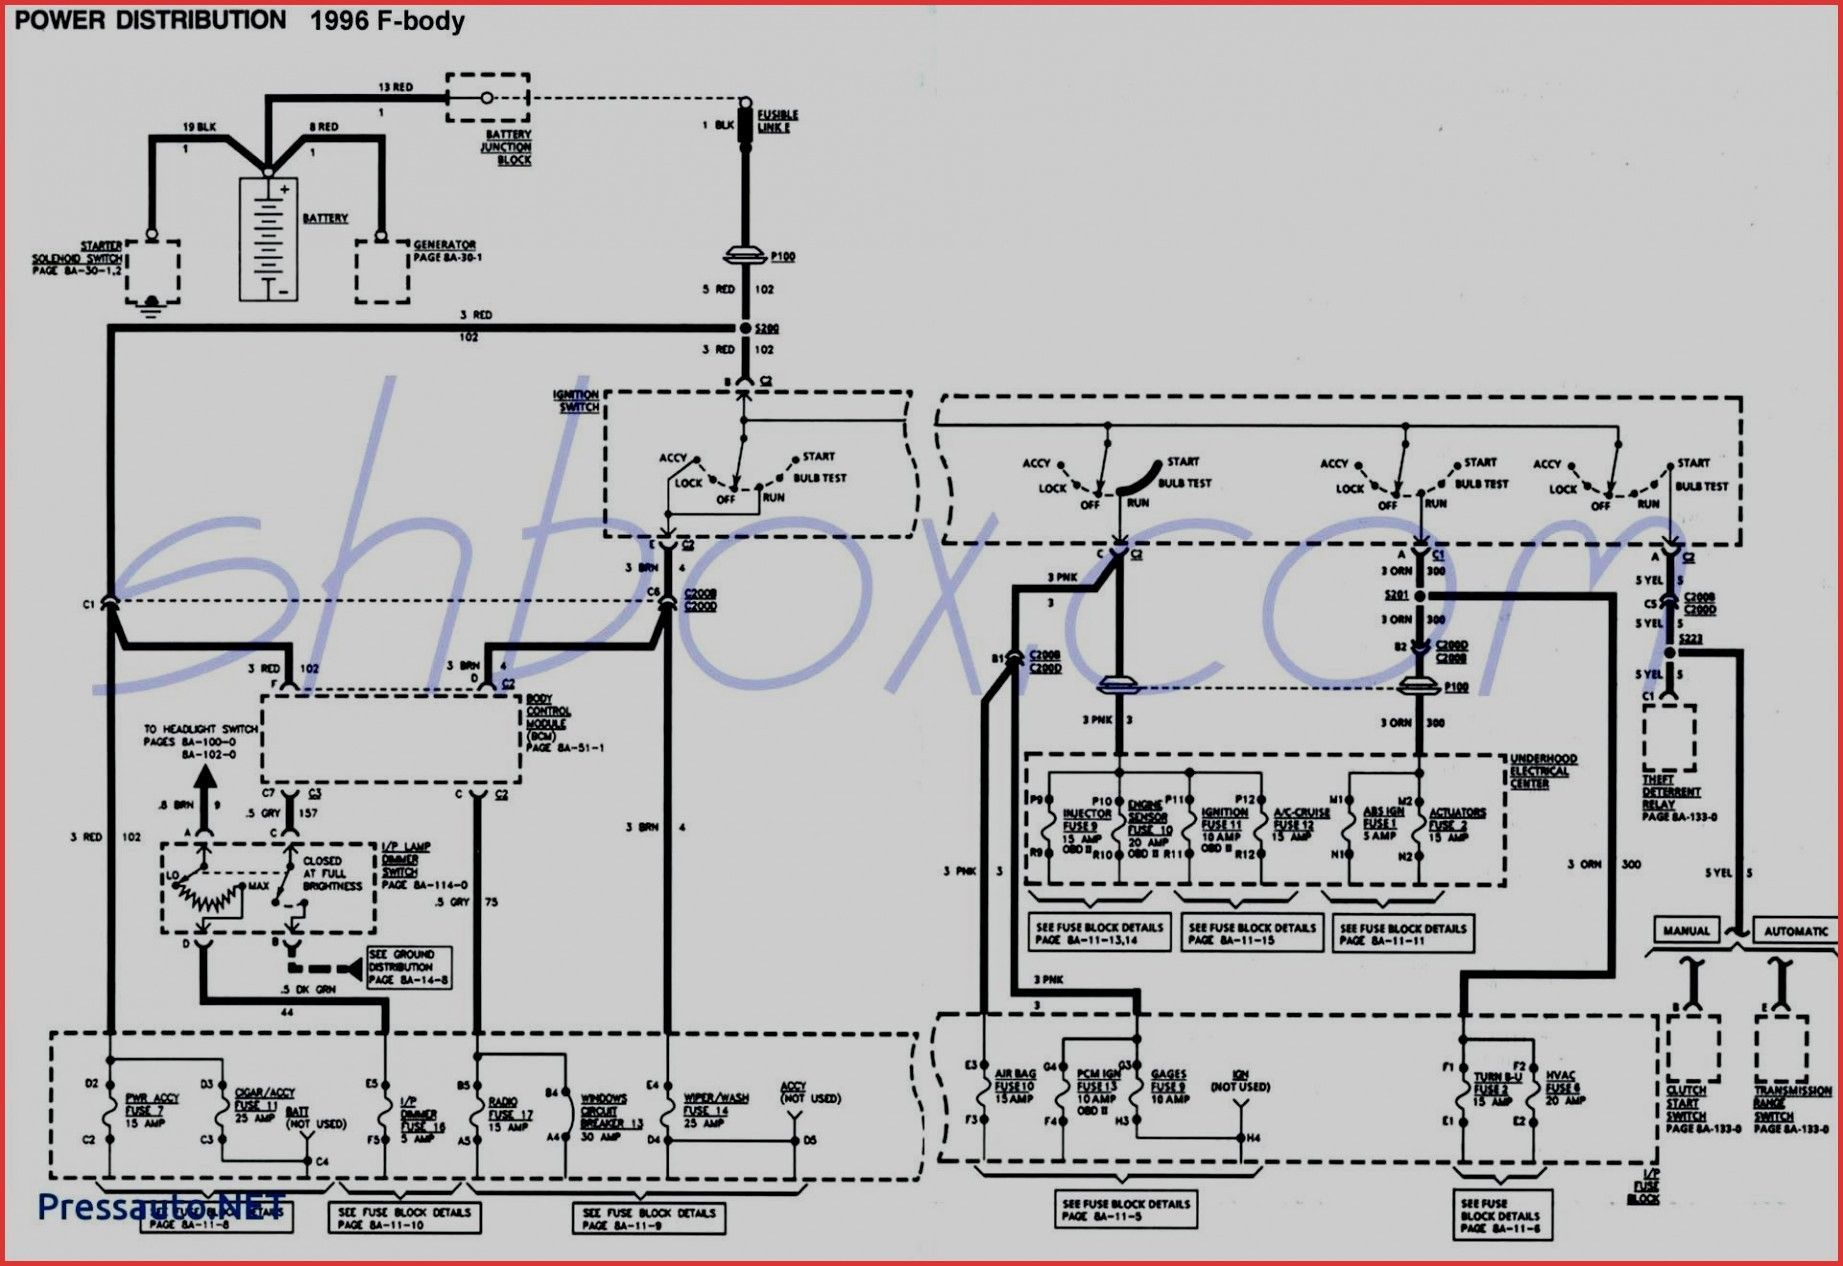 Diagramsample Diagramformats Diagramtemplate Check More At Https Diagramspros Com Wiring Diagram For 3 3 Way Switch Wiring Three Way Switch Dimmer Switch